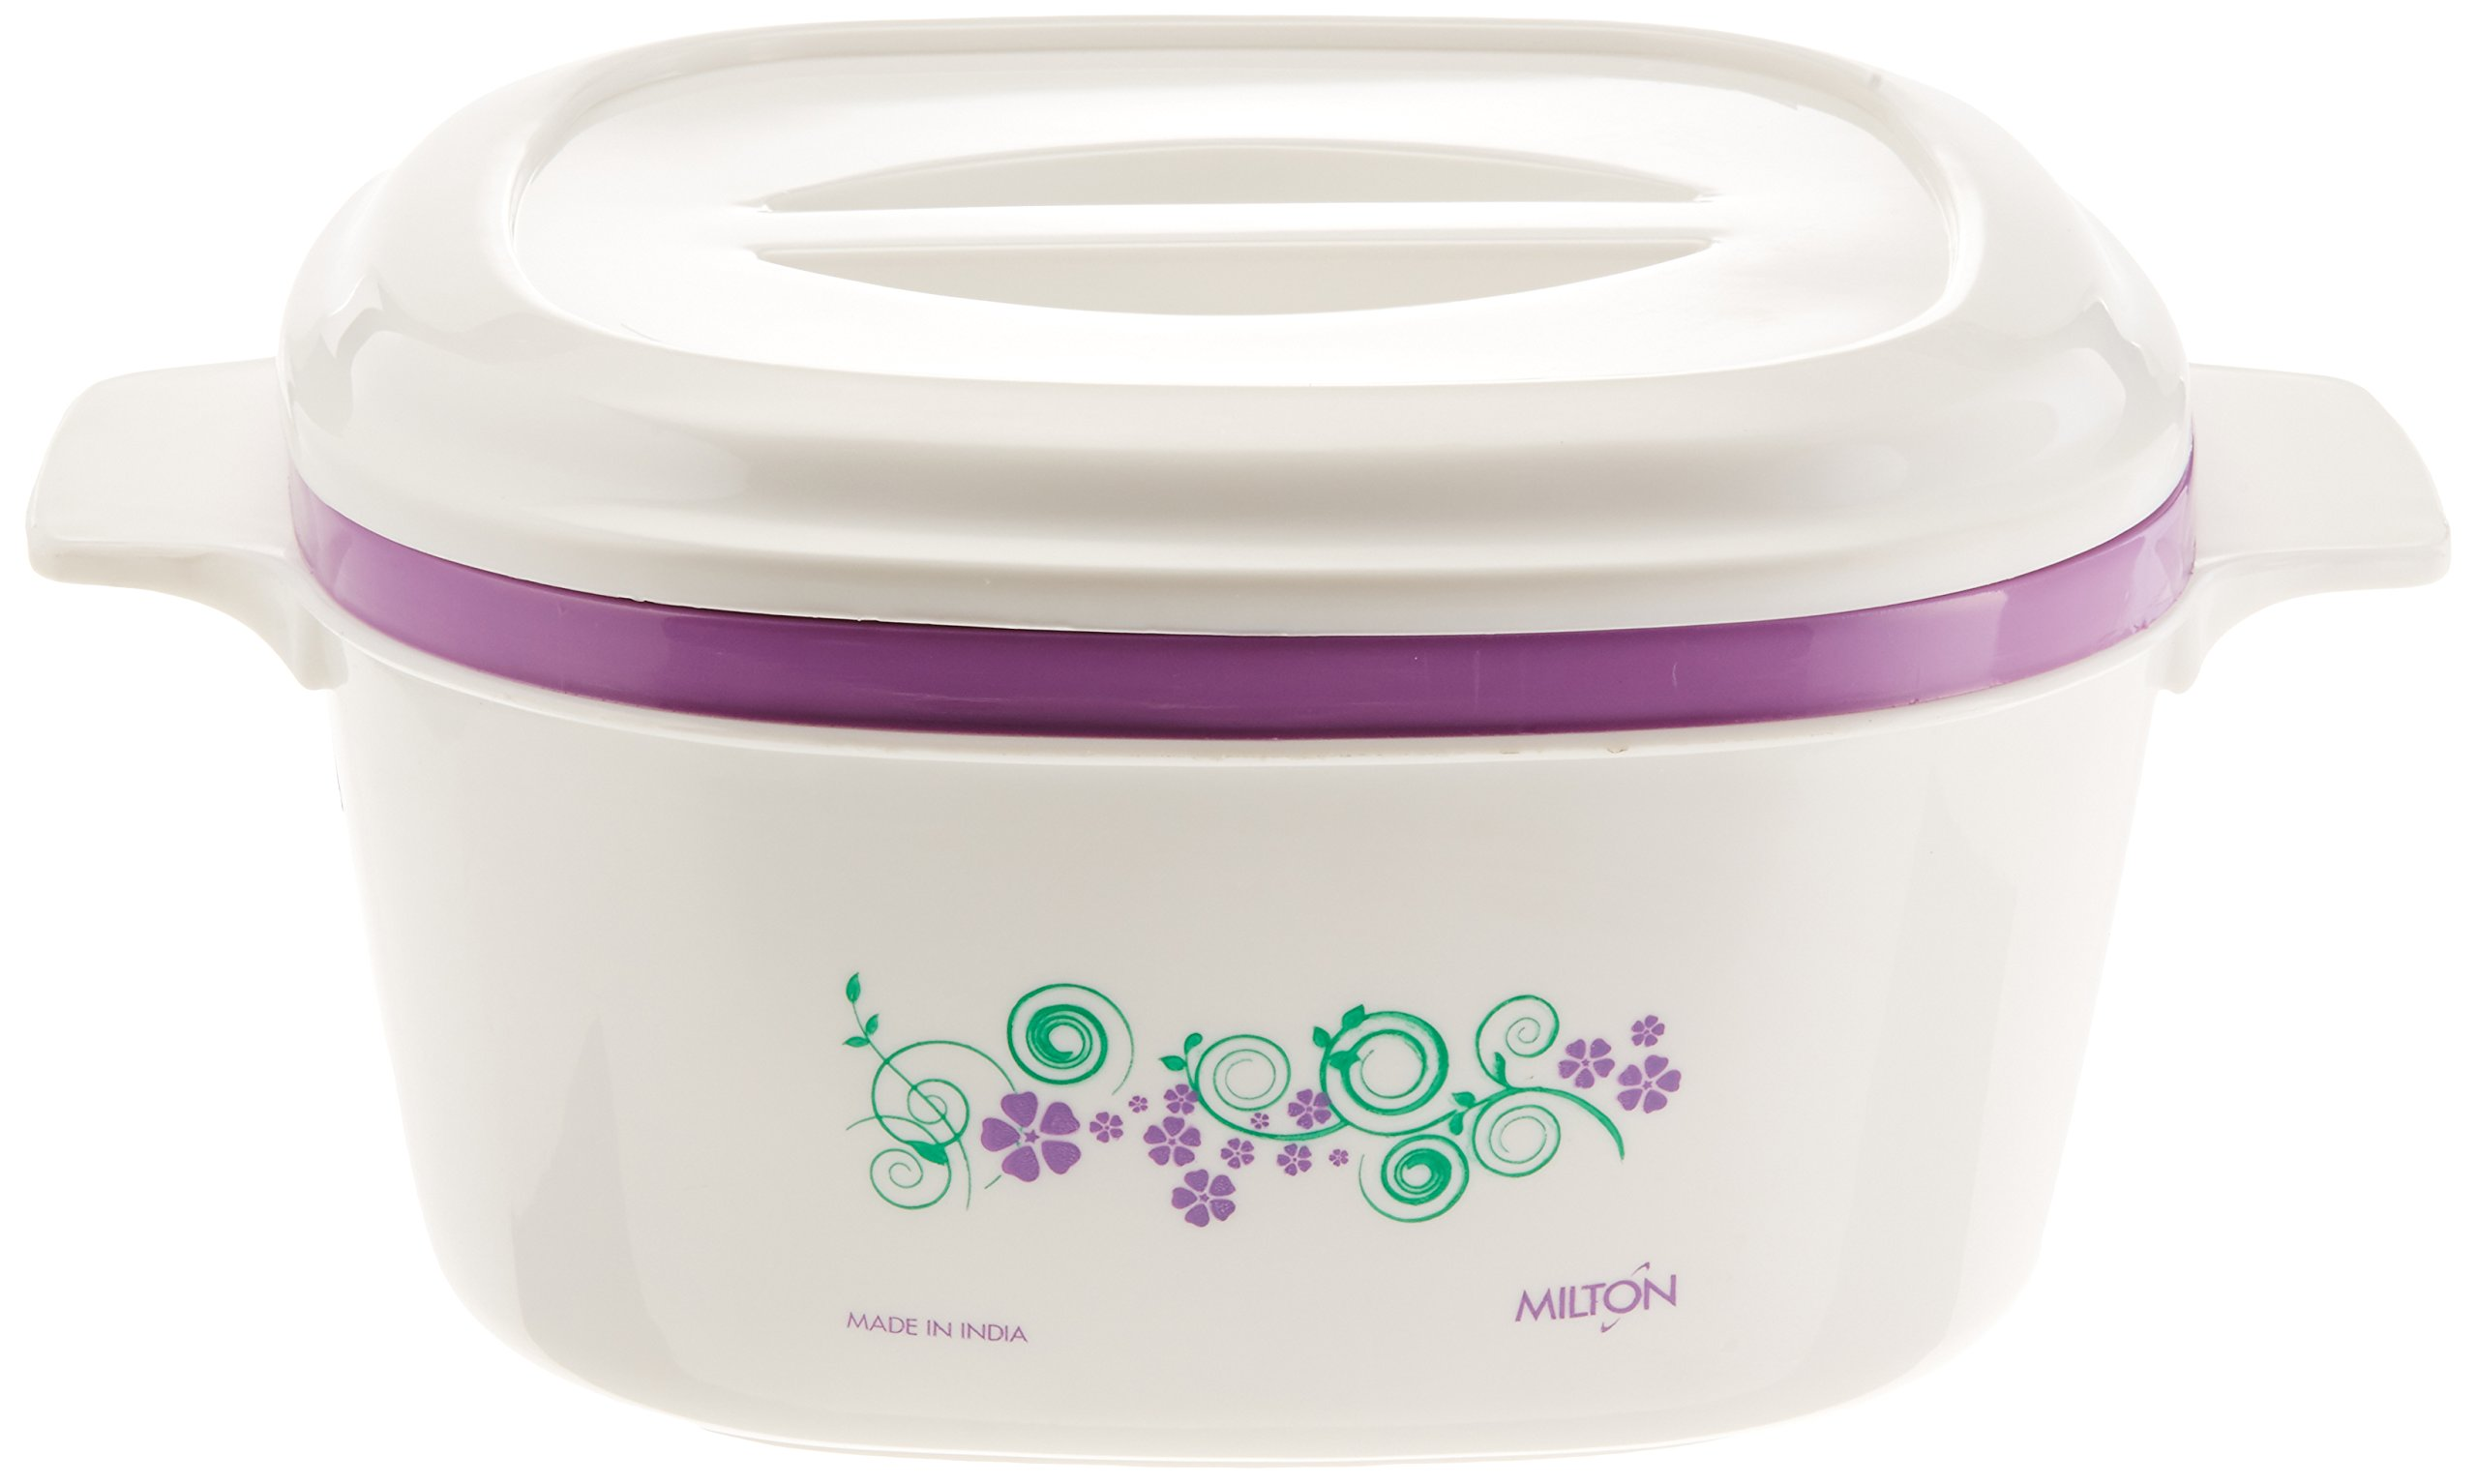 Milton Casino Hot Pot Keep Warm/Cold Insulated Casserole with Stainless Steel Insert, 2300ml/Small, White